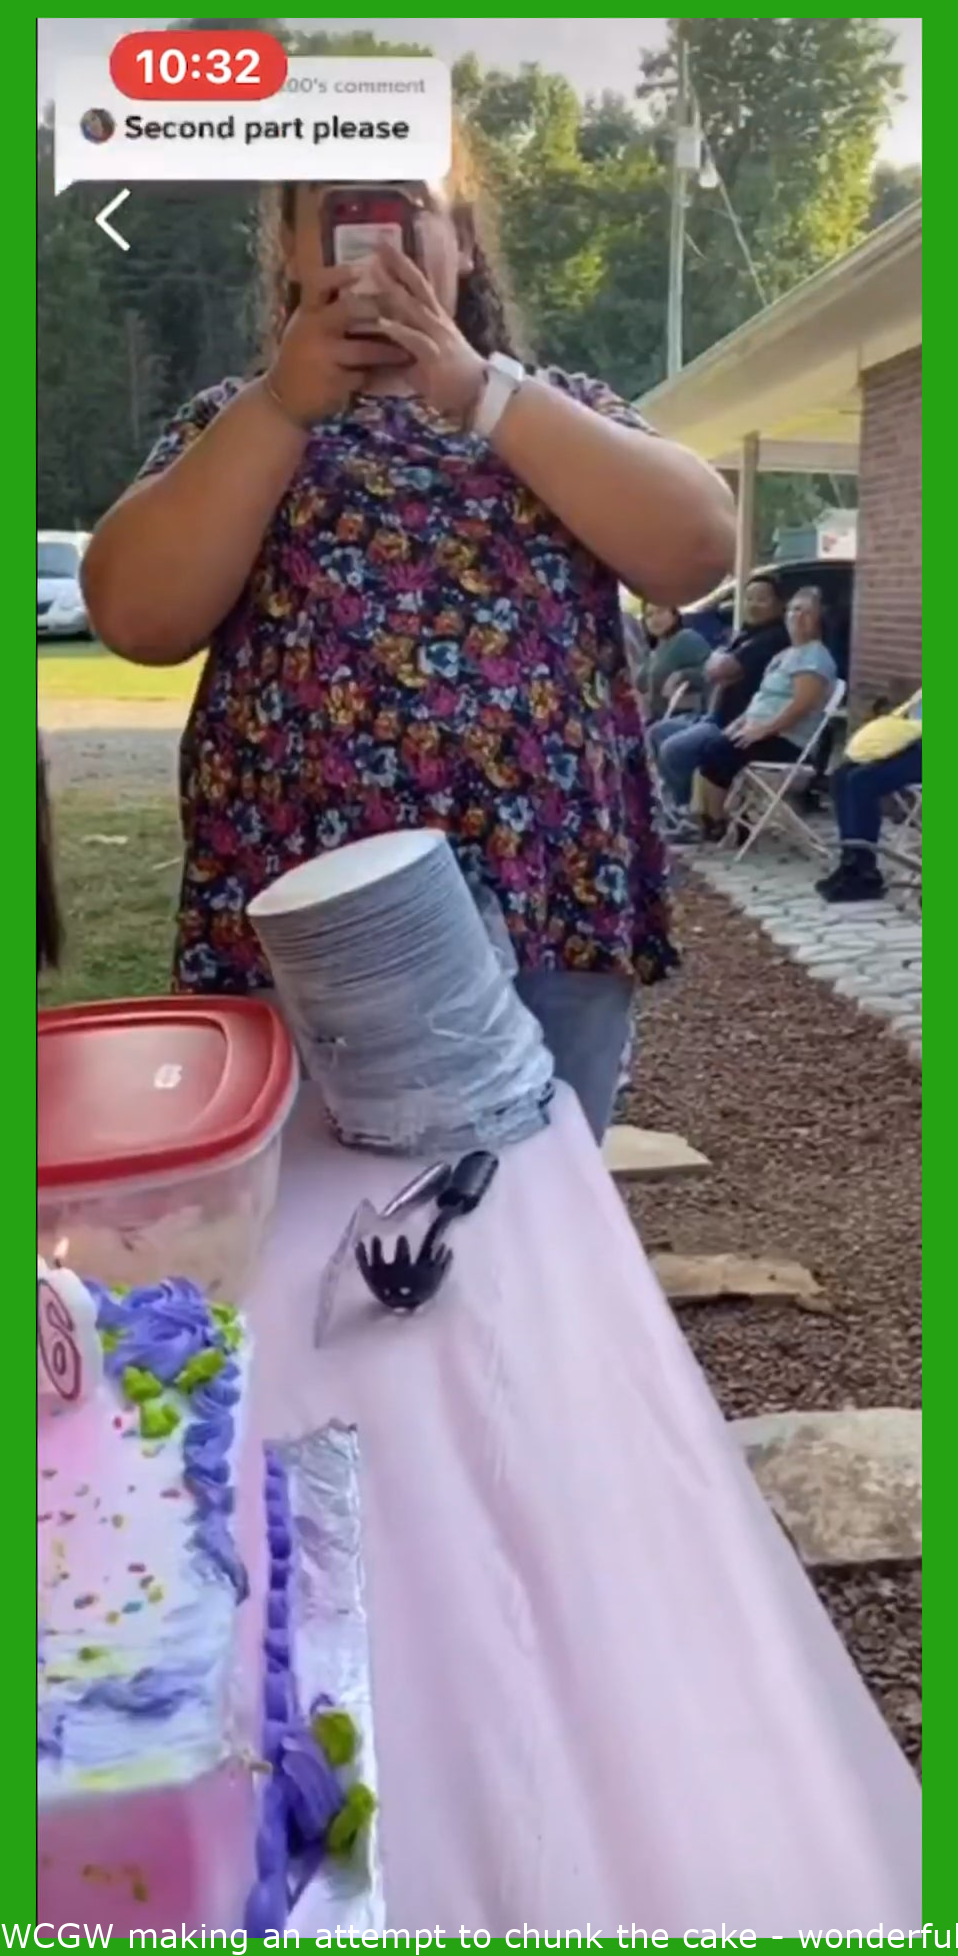 WCGW trying to bite the cake